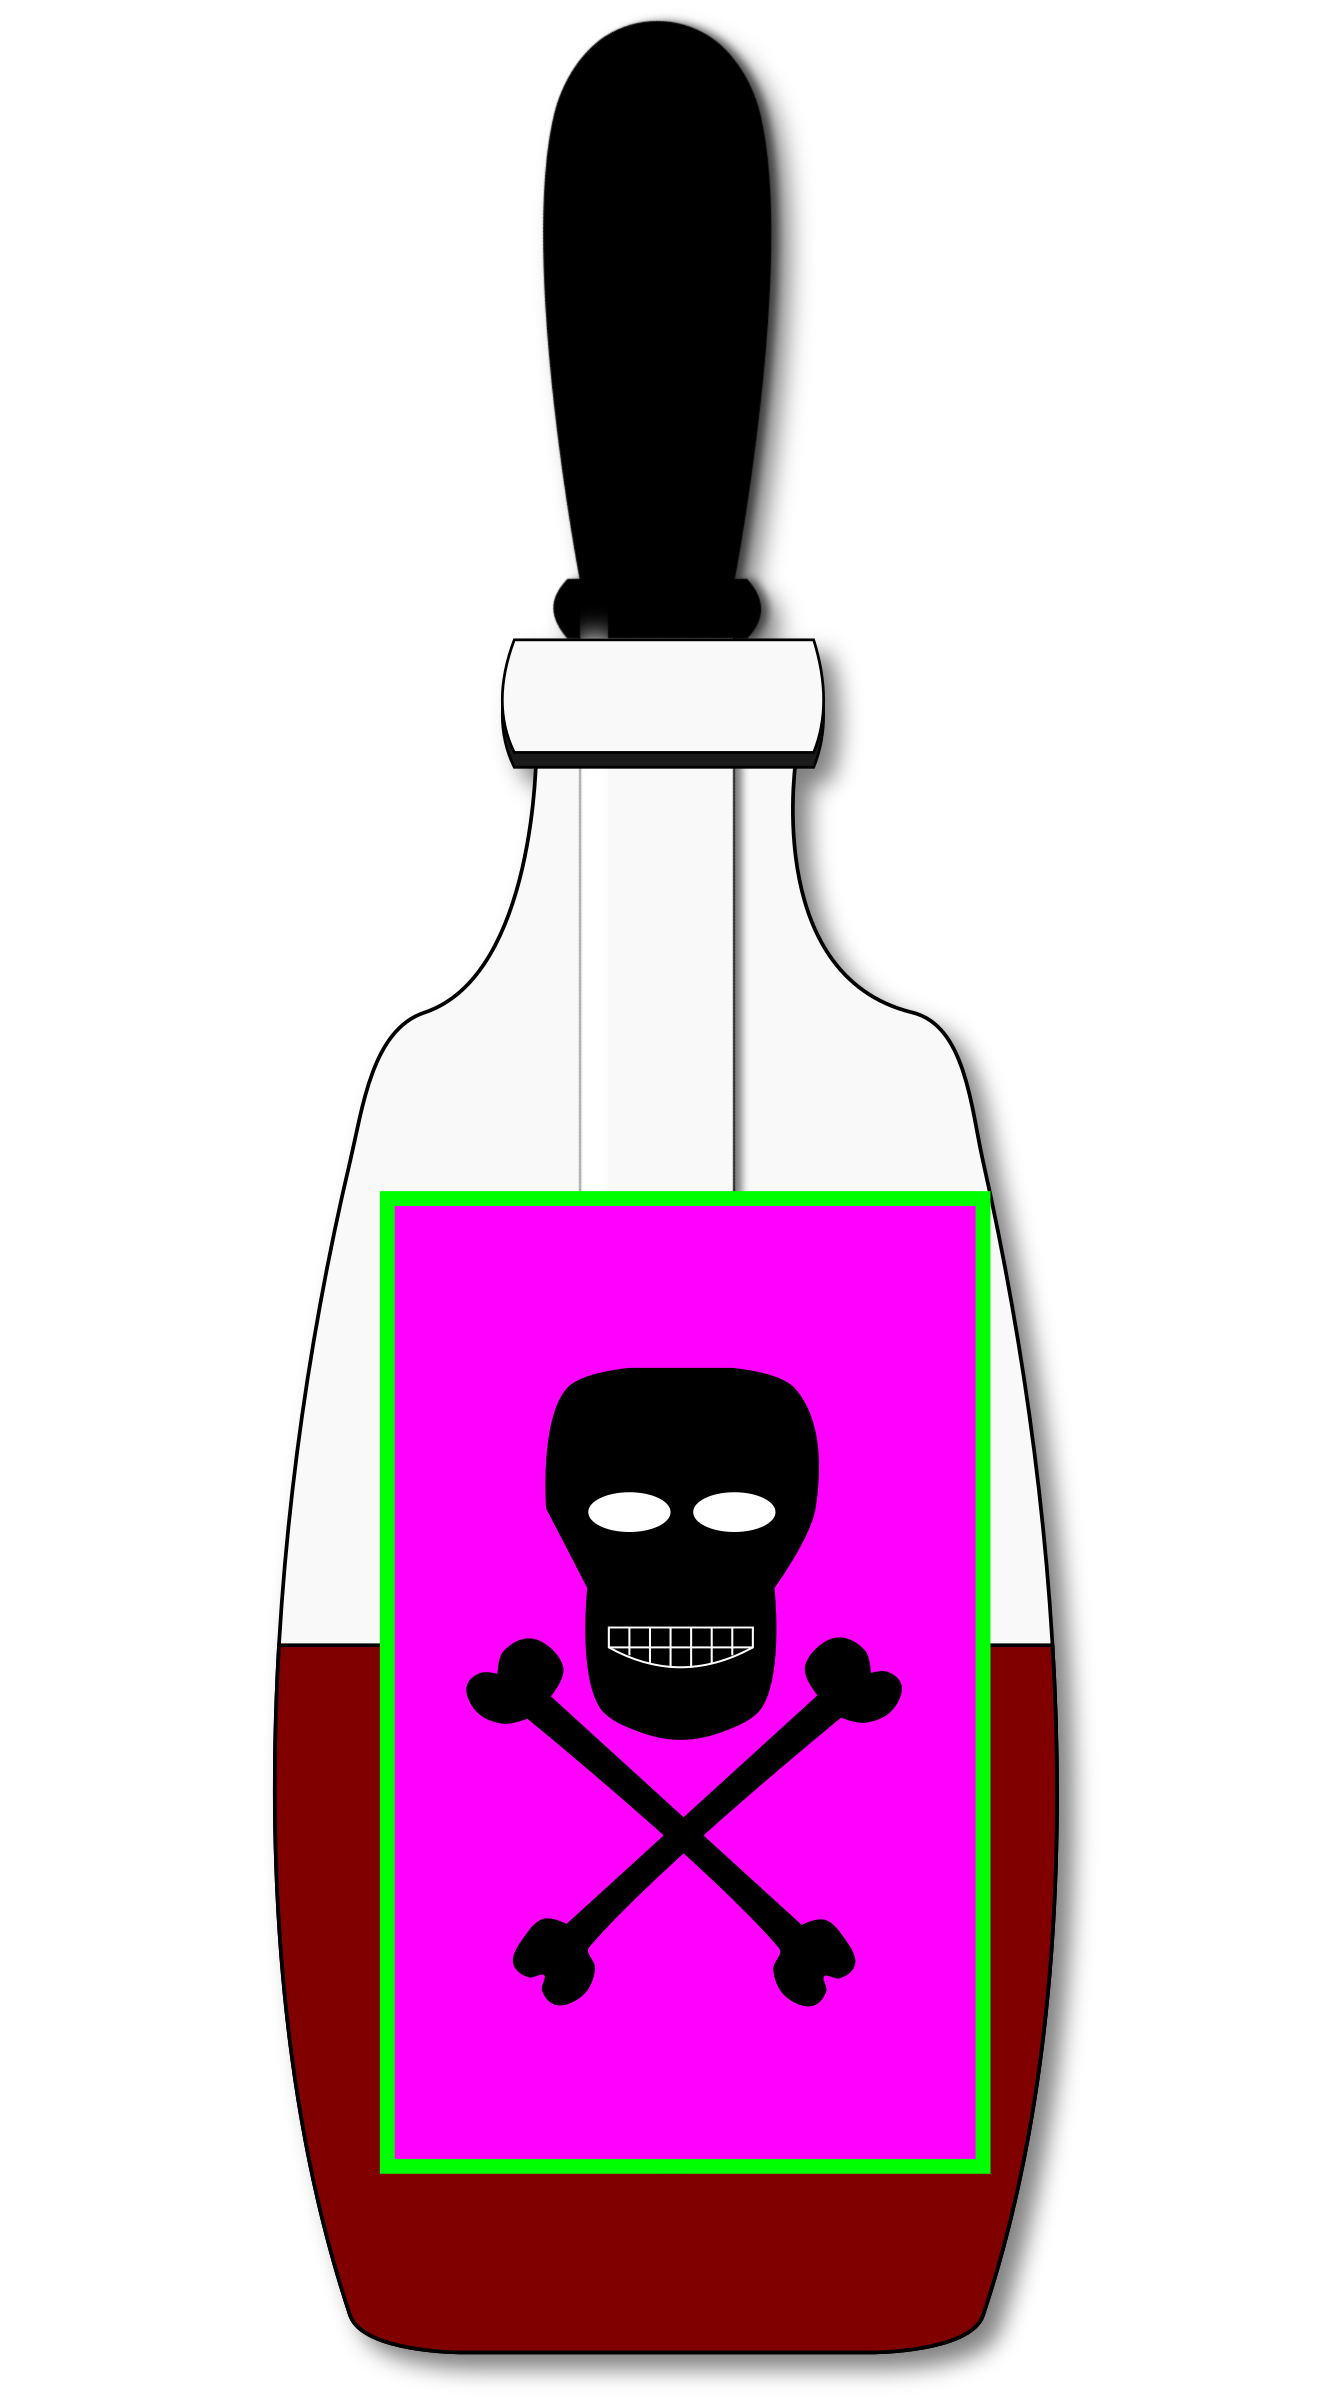 Poison clipart. Vial closed big image